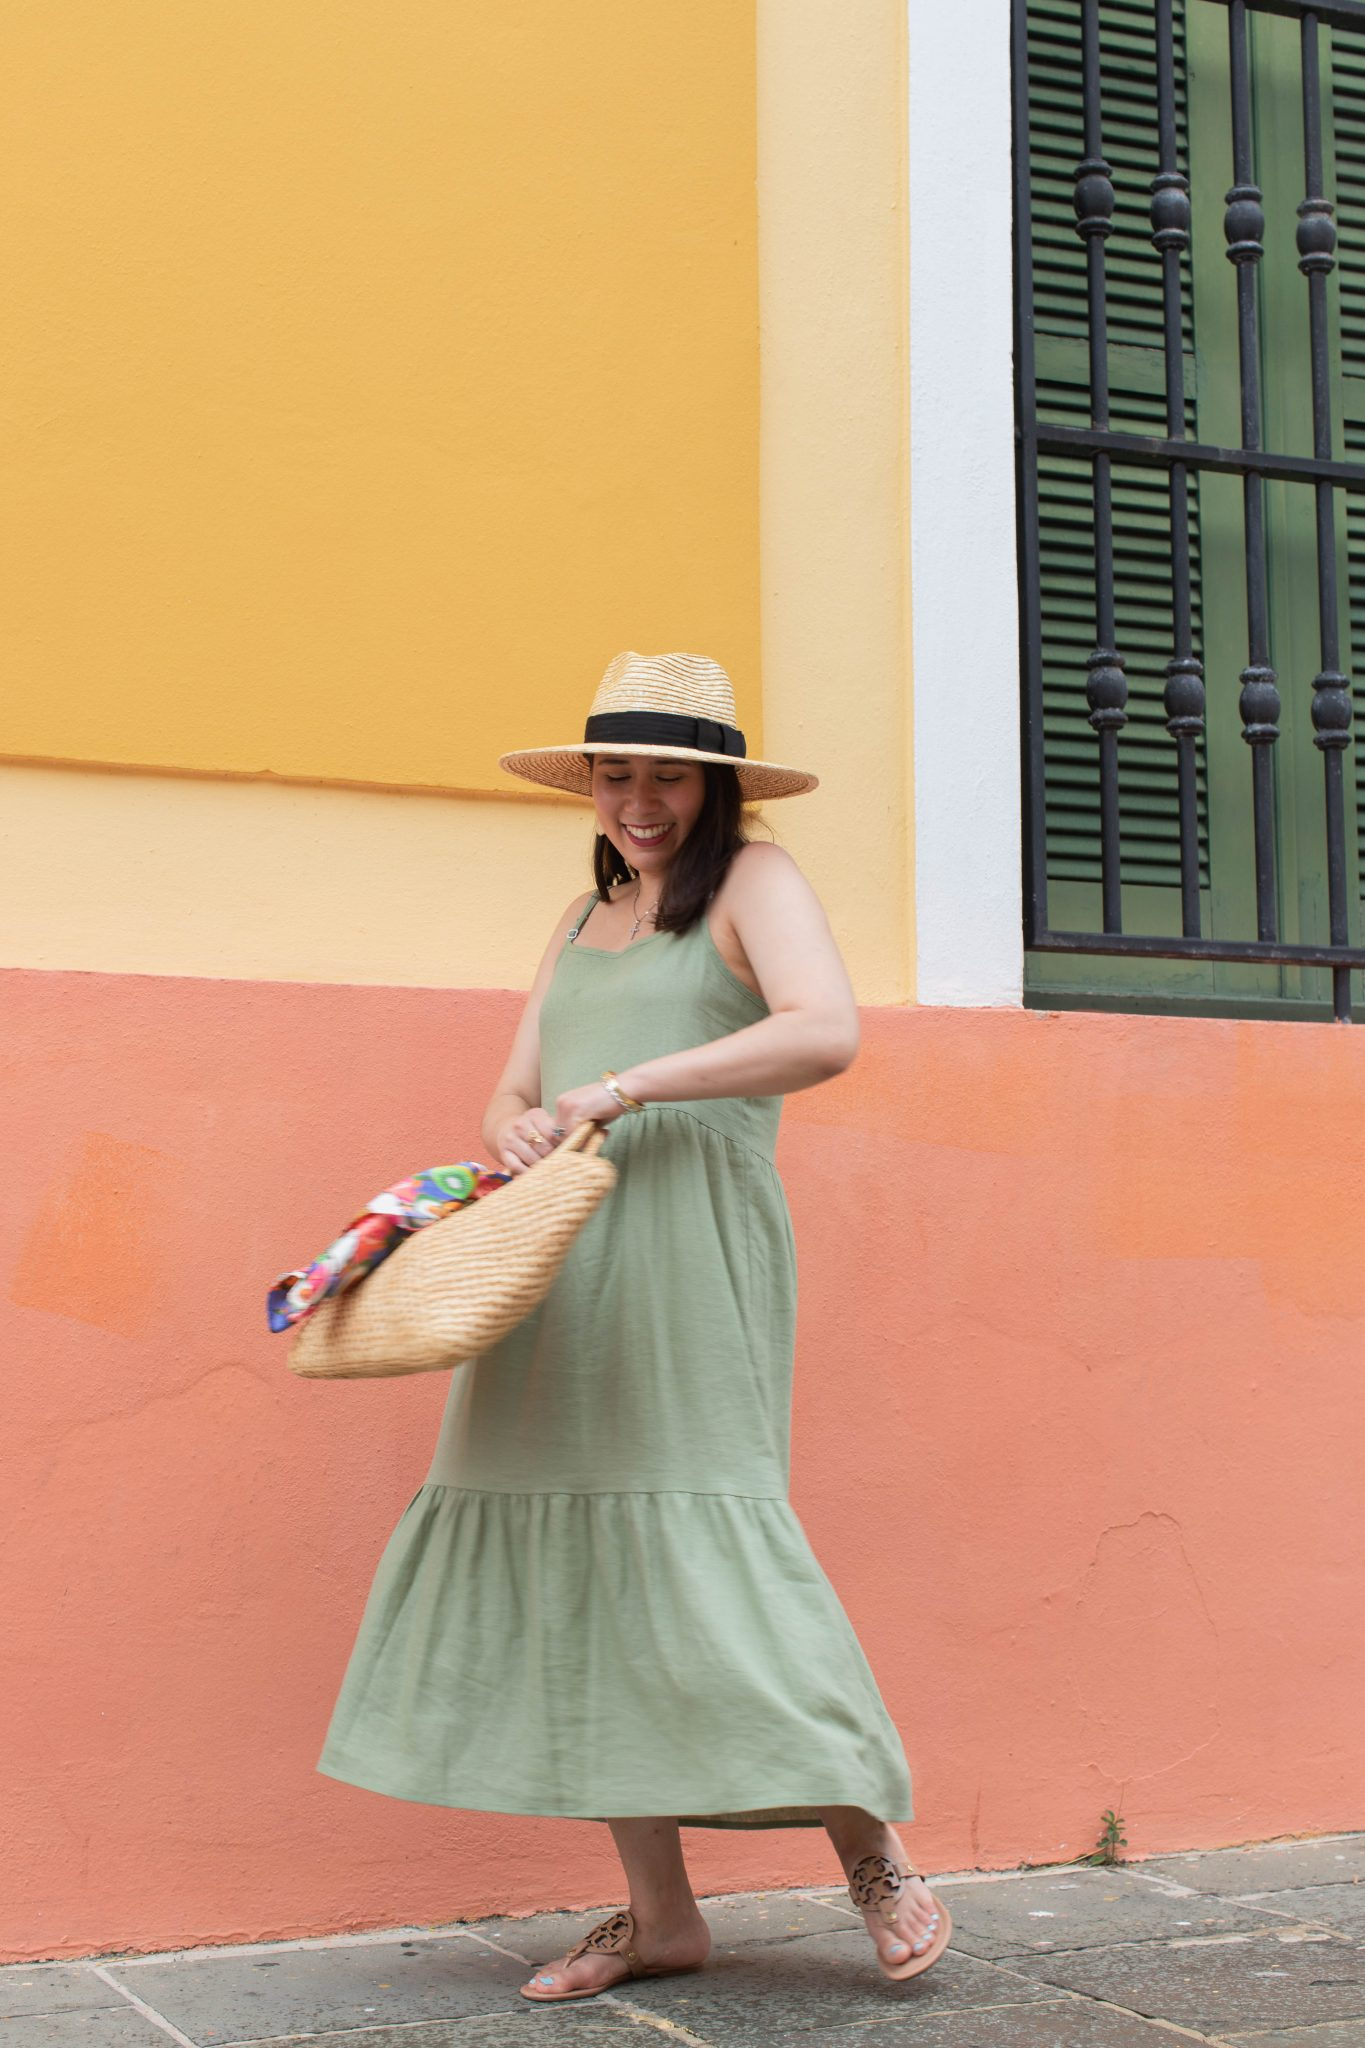 5 Essential Tips To Create Original Content And Grow Your Brand by popular New York influencer blog, Life Laugh Linda: image of a woman twirling outside in front of a yellow and orange building and wearing a green maxi dress, brown sandals, straw sunhat, and holding a straw bag with a scarf tied on one of the handles.